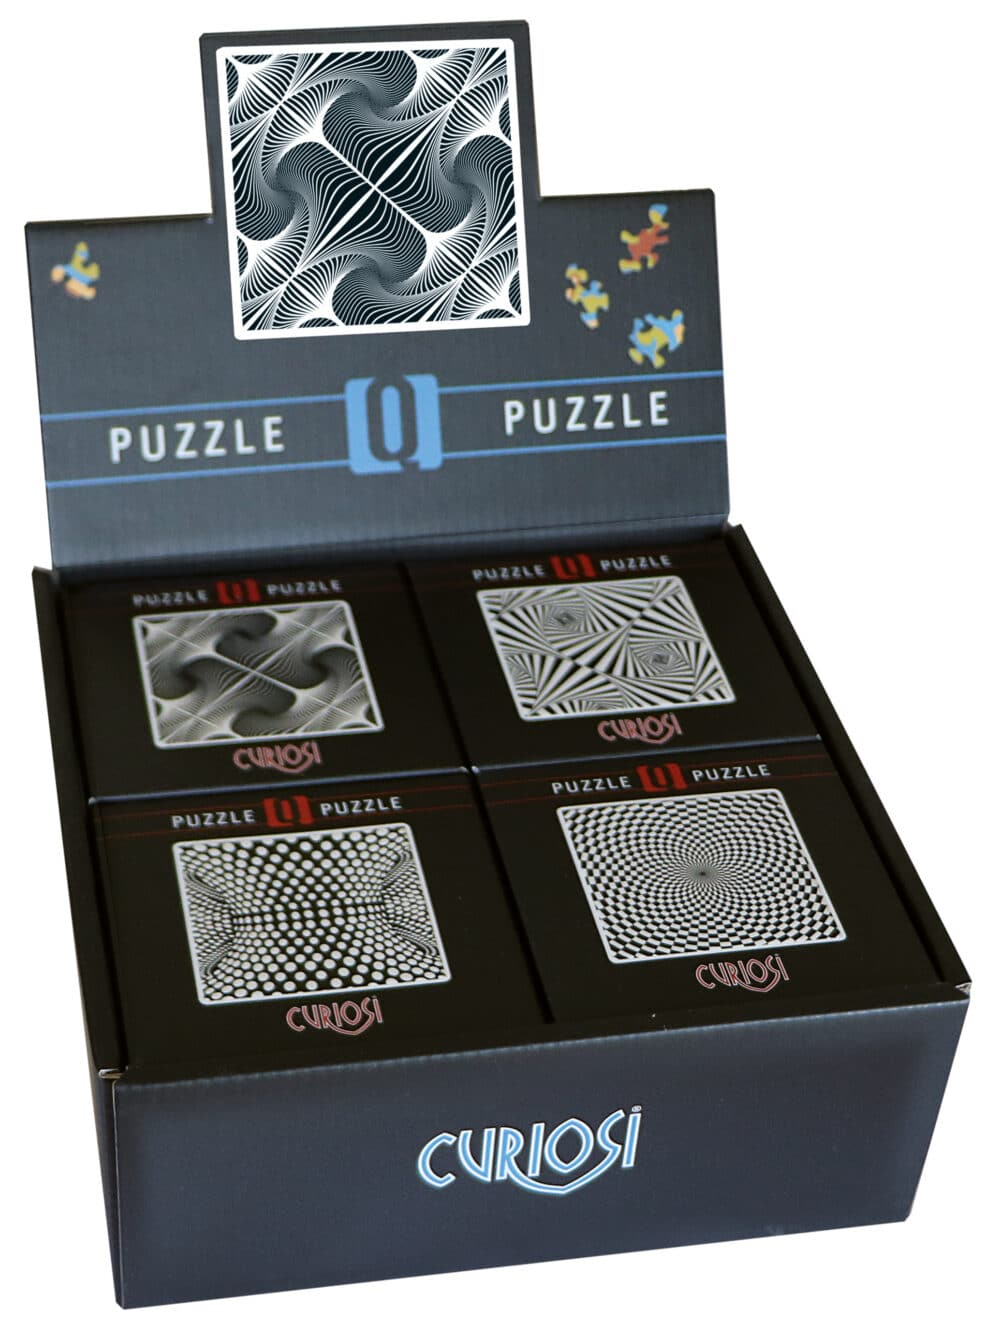 Puzzleportal Q Puzzle Shimmer Display scaled